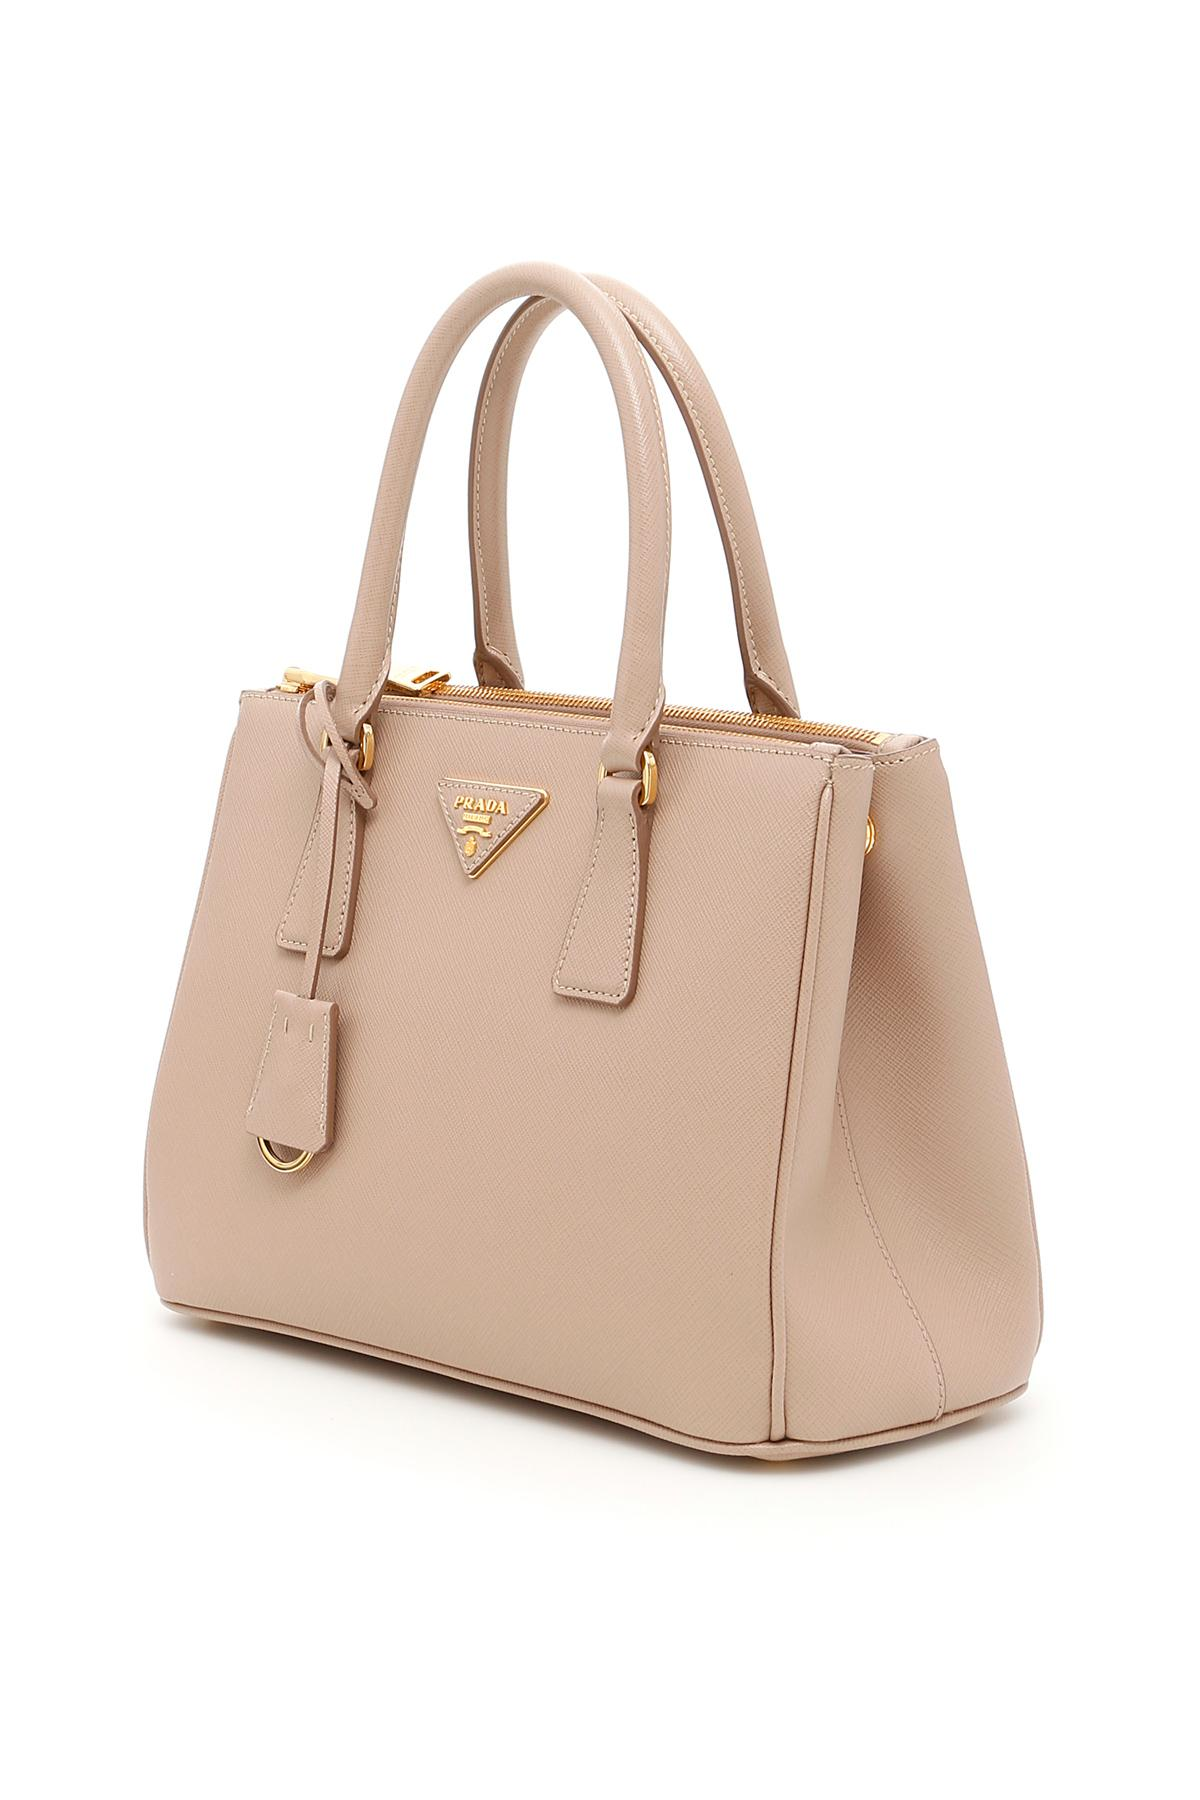 aa1da645ed59 Prada - Multicolor Galleria Saffiano Small Leather Tote - Lyst. View  fullscreen